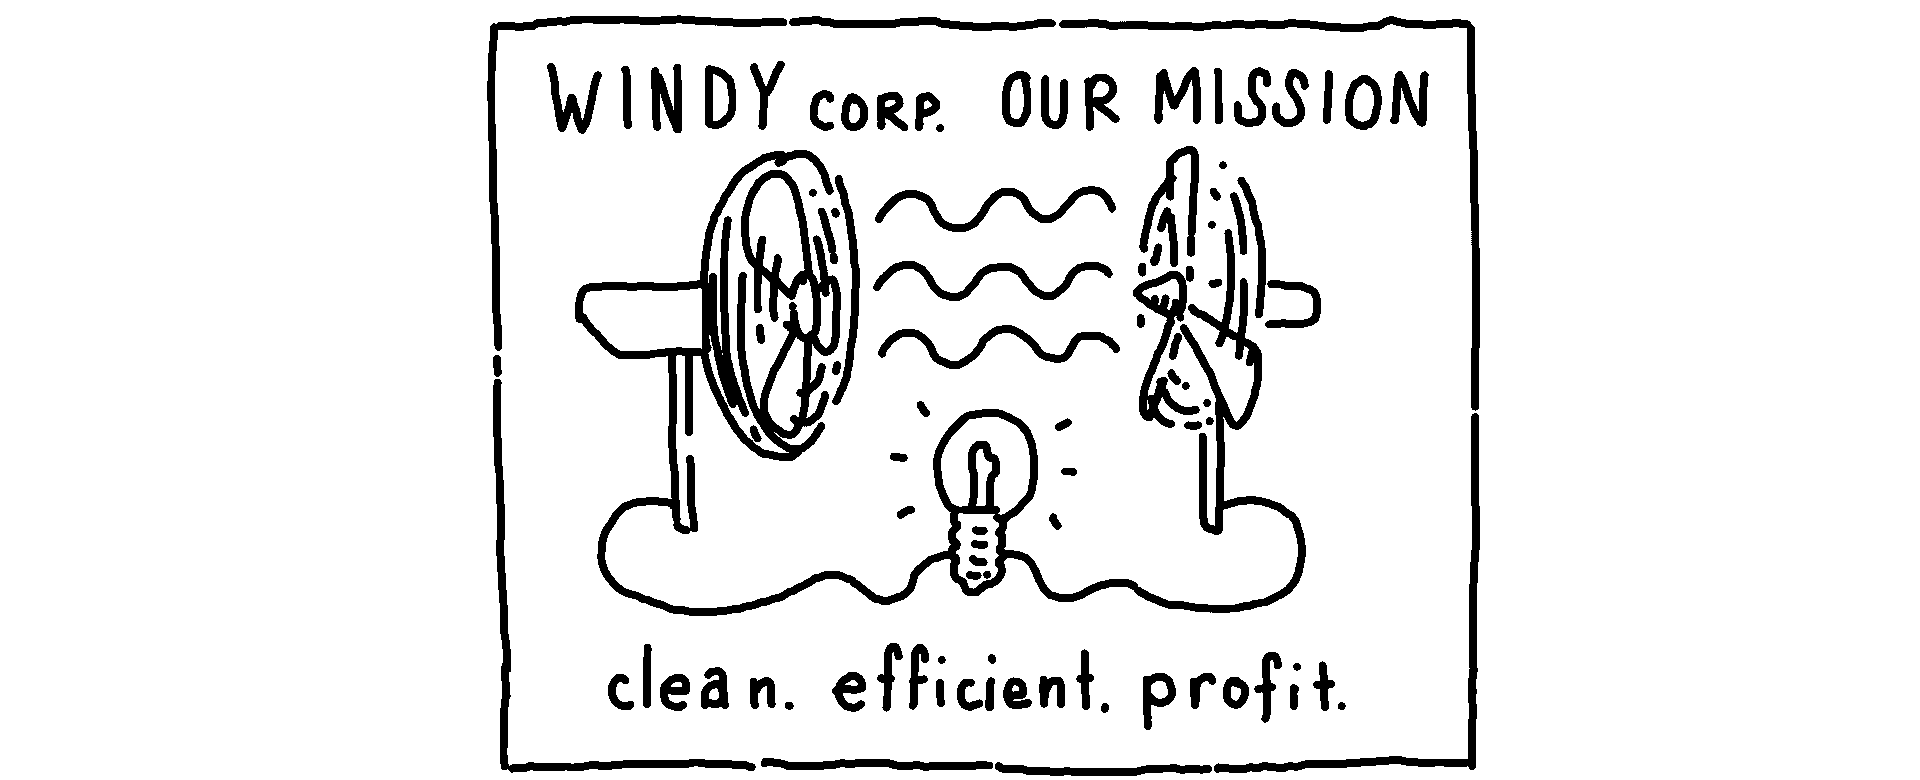 clean. efficient. profit.